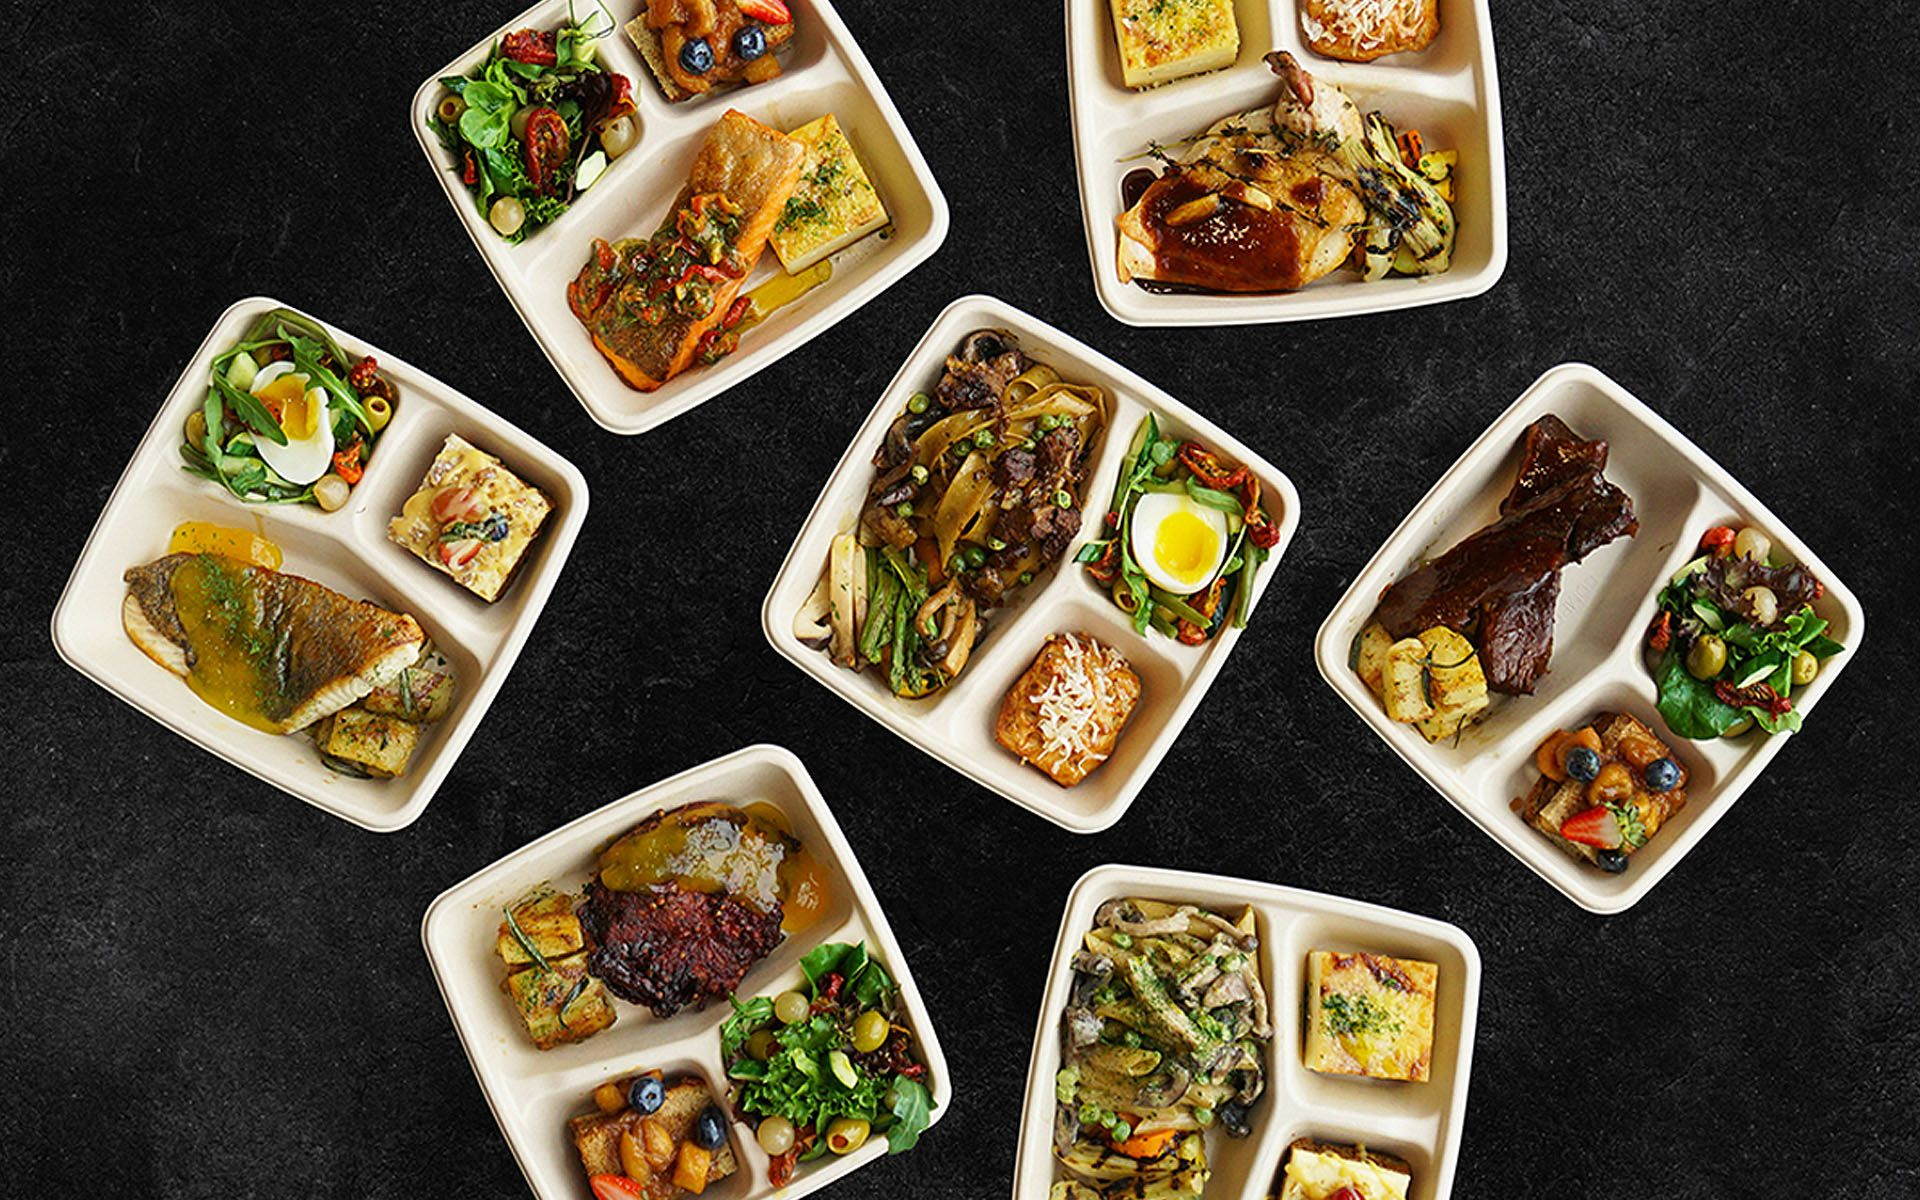 Nourish By Quan's Kitchen: The Price Is Right For These Set Meals